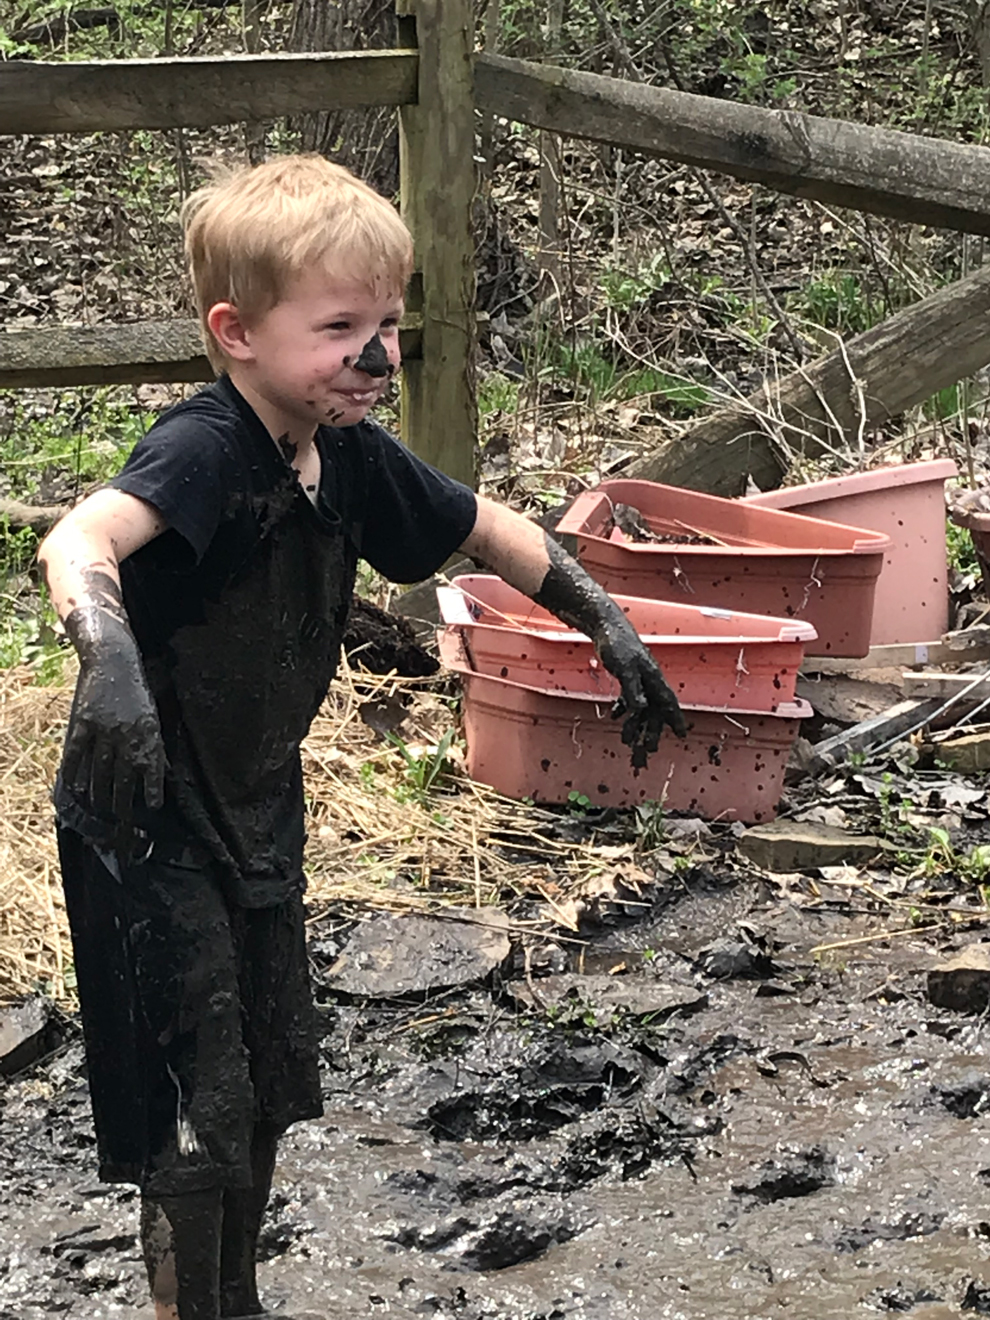 Young boy covered in mud at the Blendon Woods Natural Play Area.